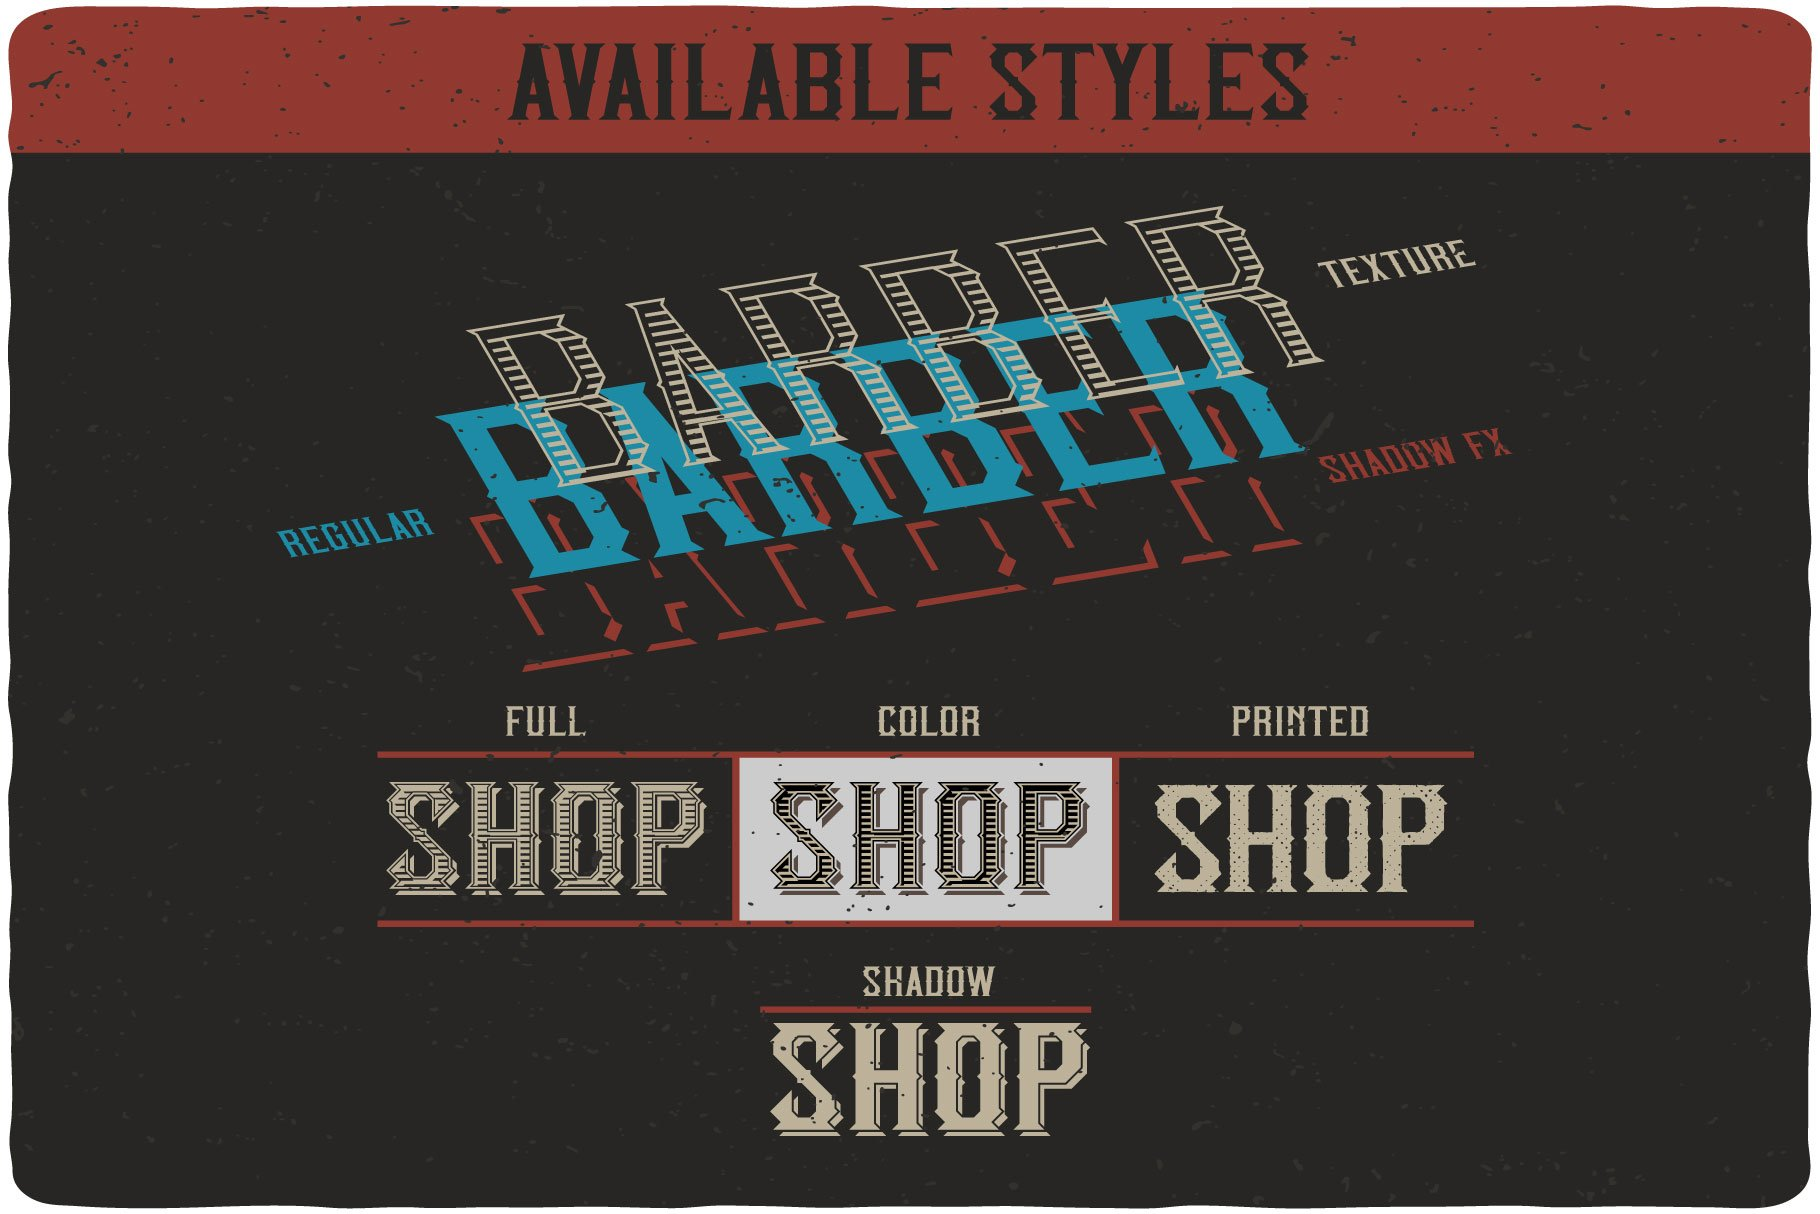 Available styles of Classic BarberShop.